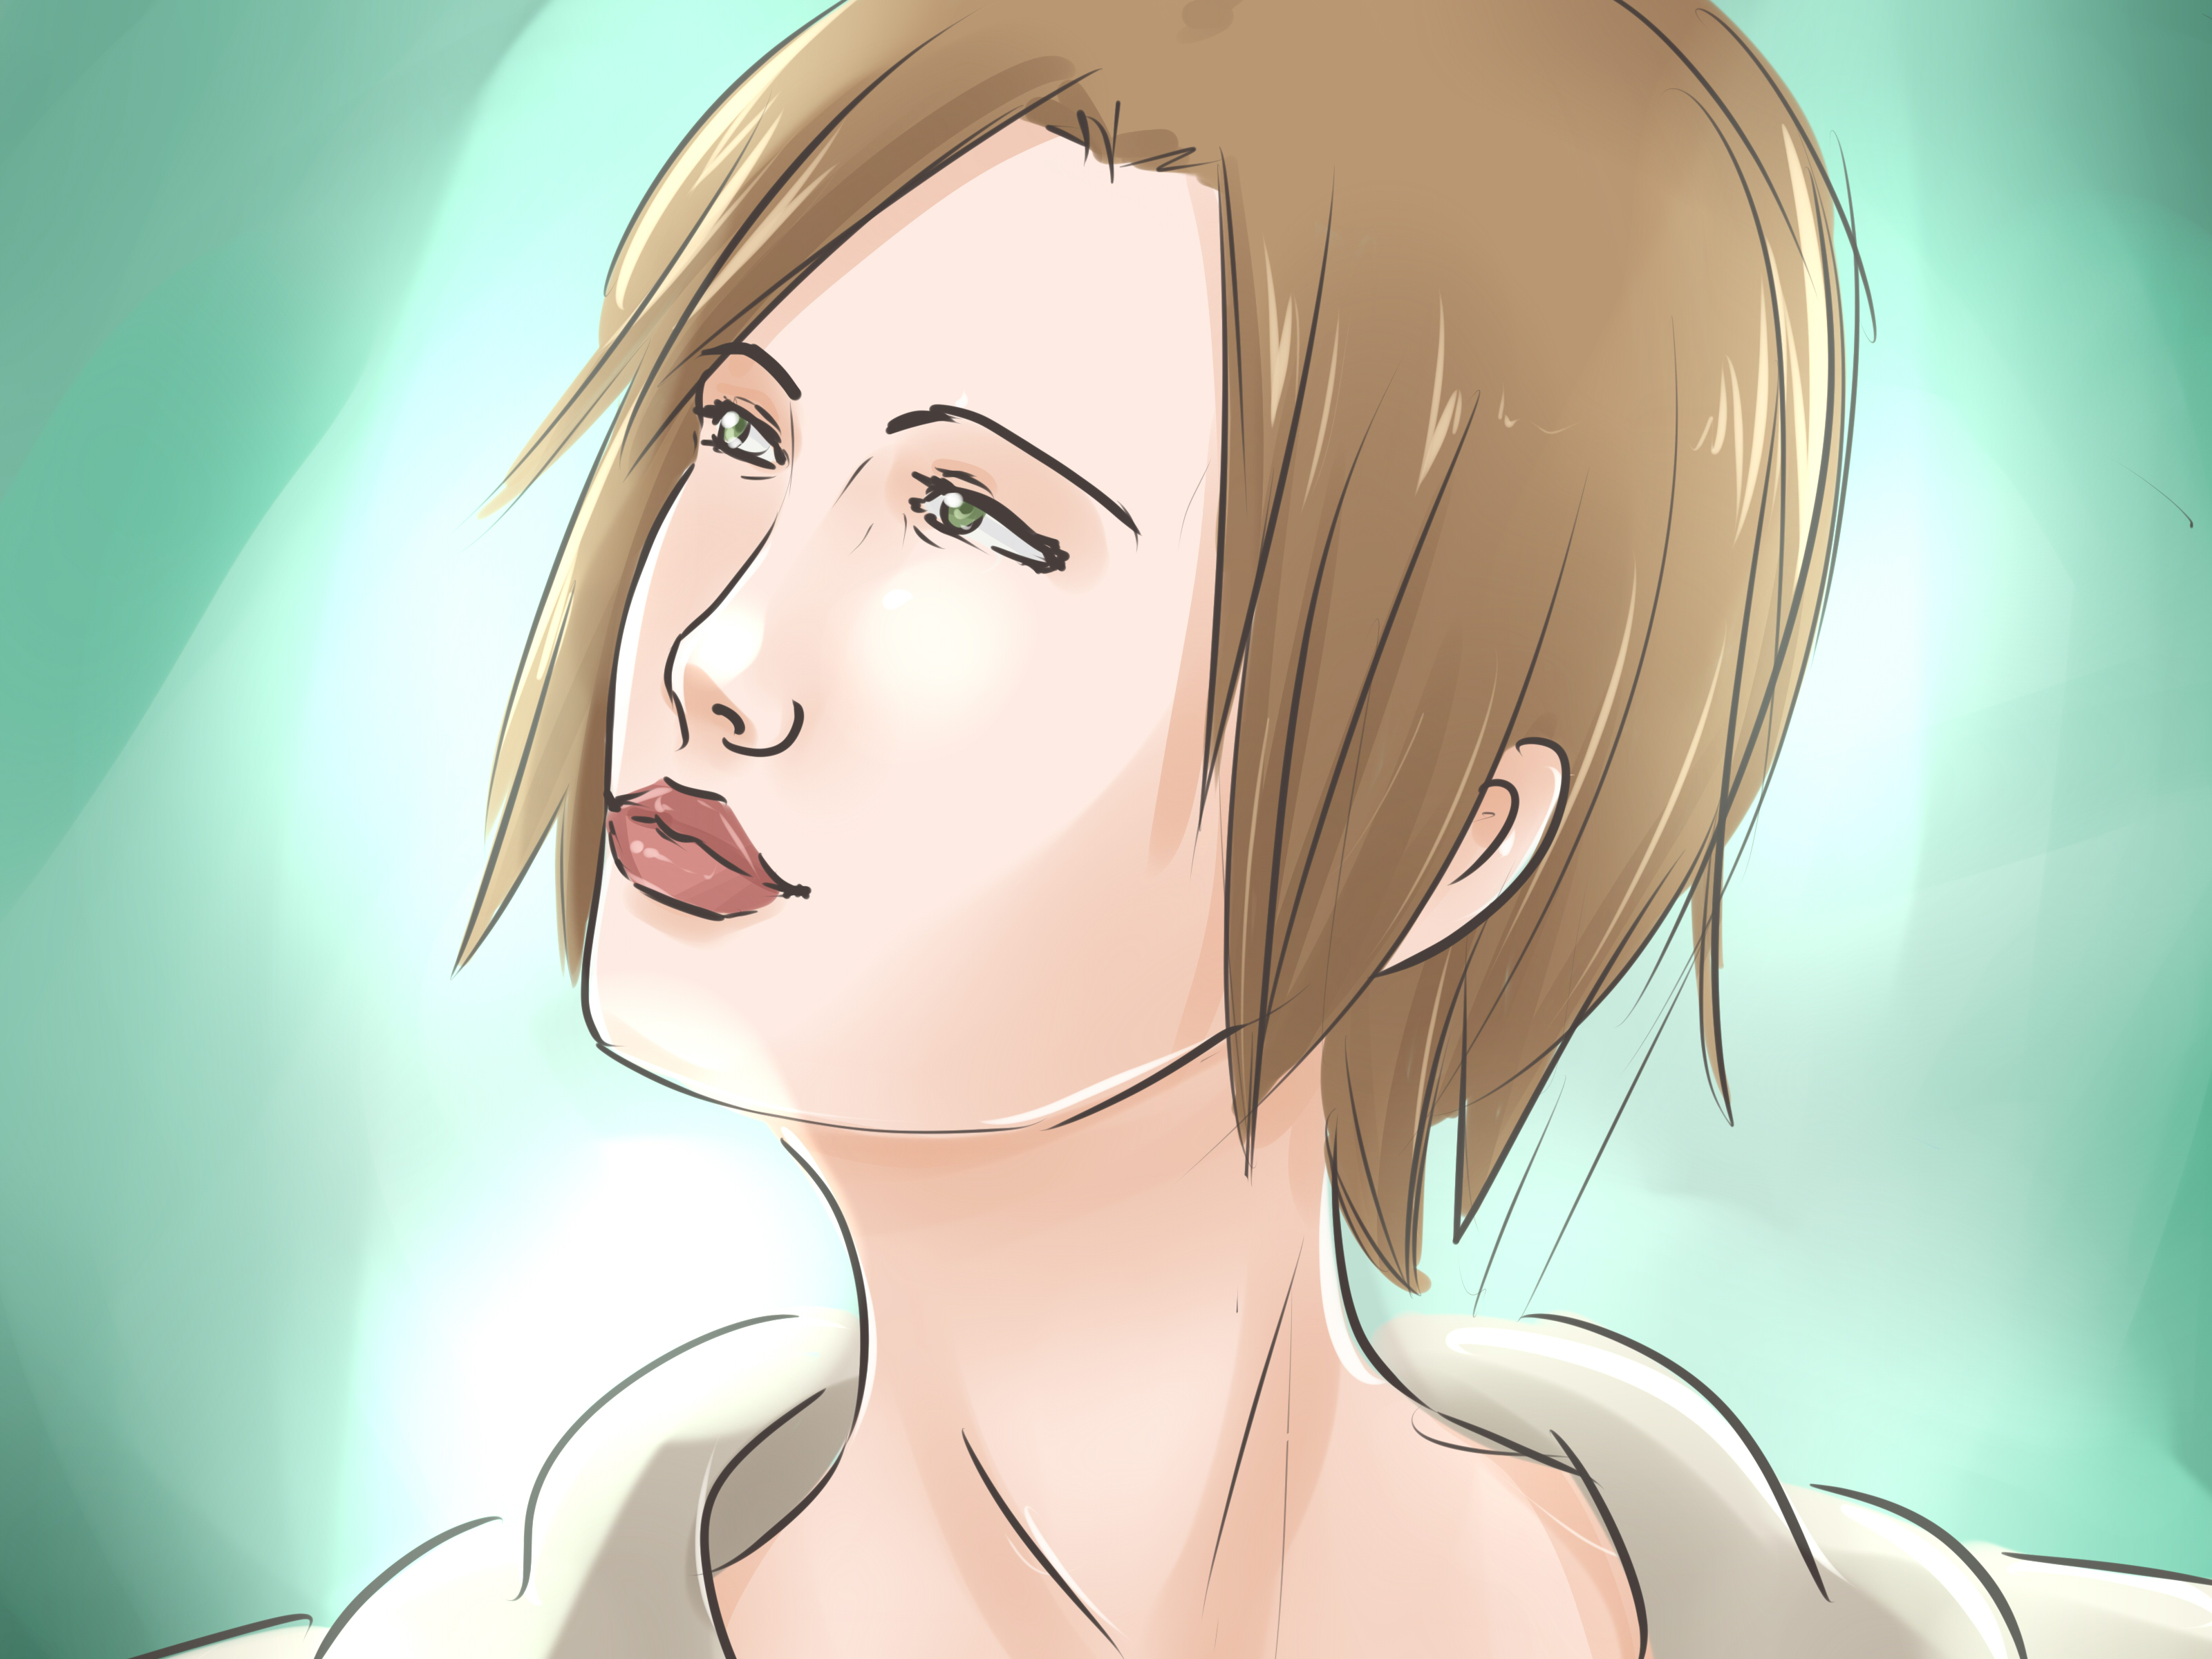 How To Dress Like A Tomboy 15 Steps With Pictures WikiHow